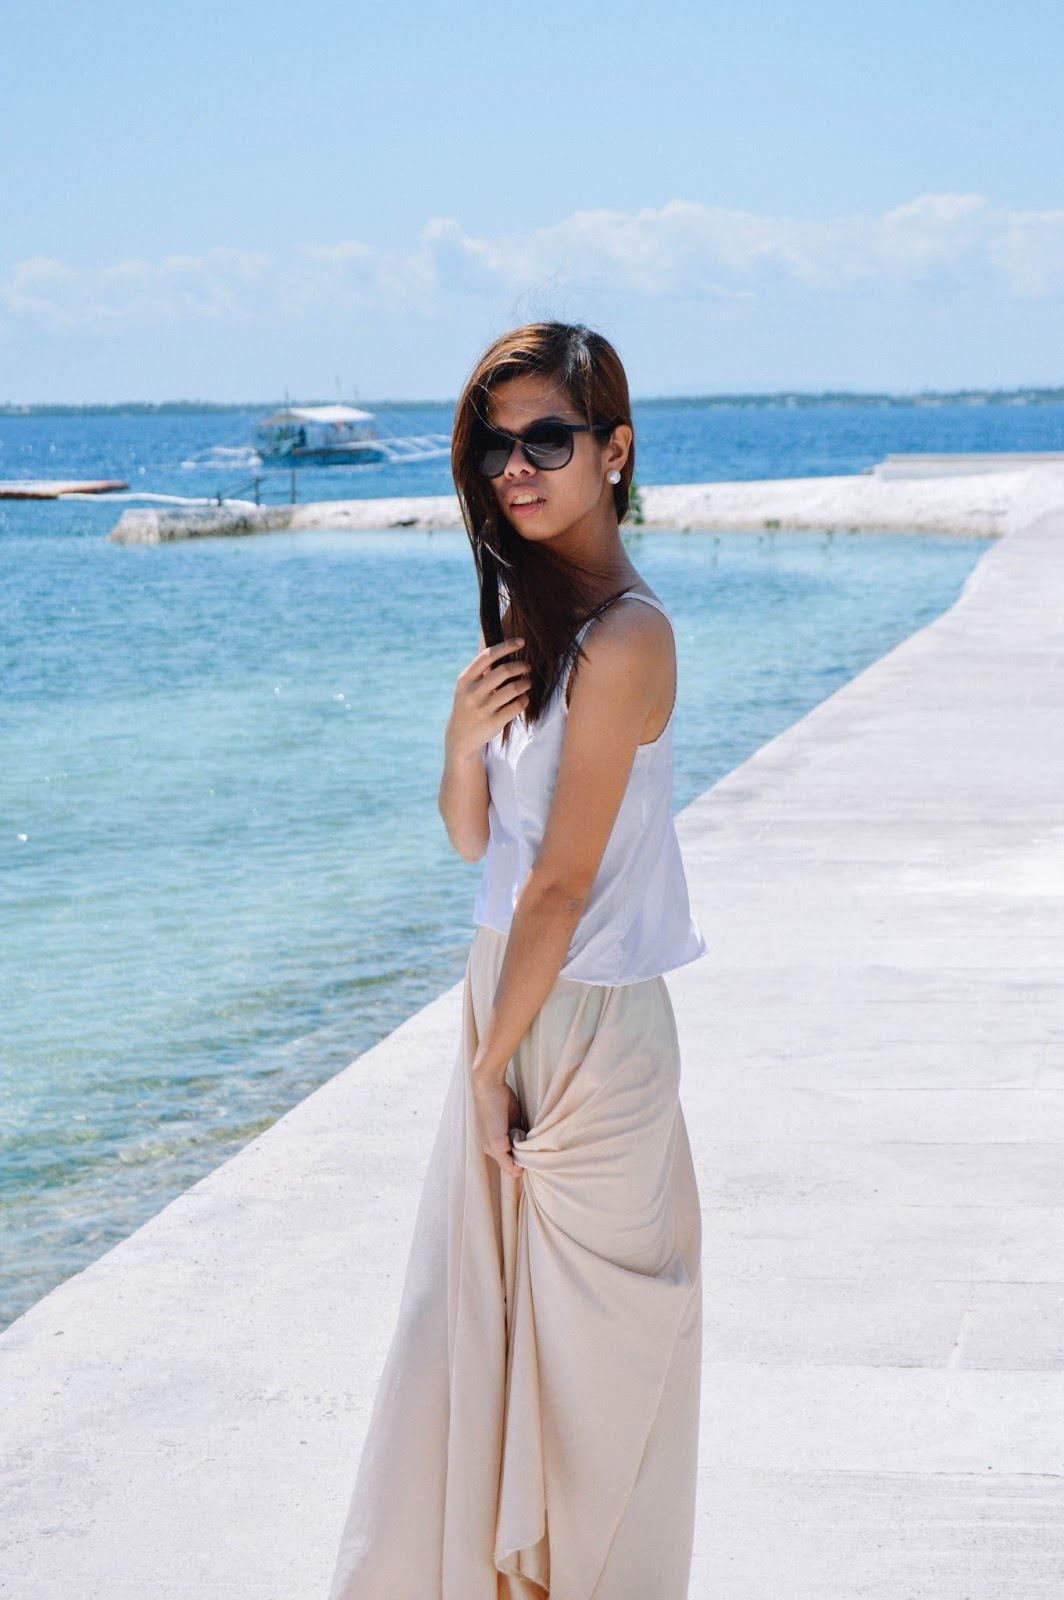 summer ootd, summer breeze, chill summer, summer, chill, Costabella Beach Resort, How to edit instagram photos, fashion blogger, style blogger, cebu blogger, cebu style blogger, blogger, filipina blogger, cebuana blogger, nested thoughts, katherine cutar, katherine anne cutar, katherineanika, katherine annika, ootd, ootd pilipinas, summer 2015, philippines summer 2015, philippines summer, cebu summer, cebu summer 2015, costabella cebu, triangl swimwear, triangl cebu, triangl, triangl swimwear philippines, bikini ph, bikini cebu